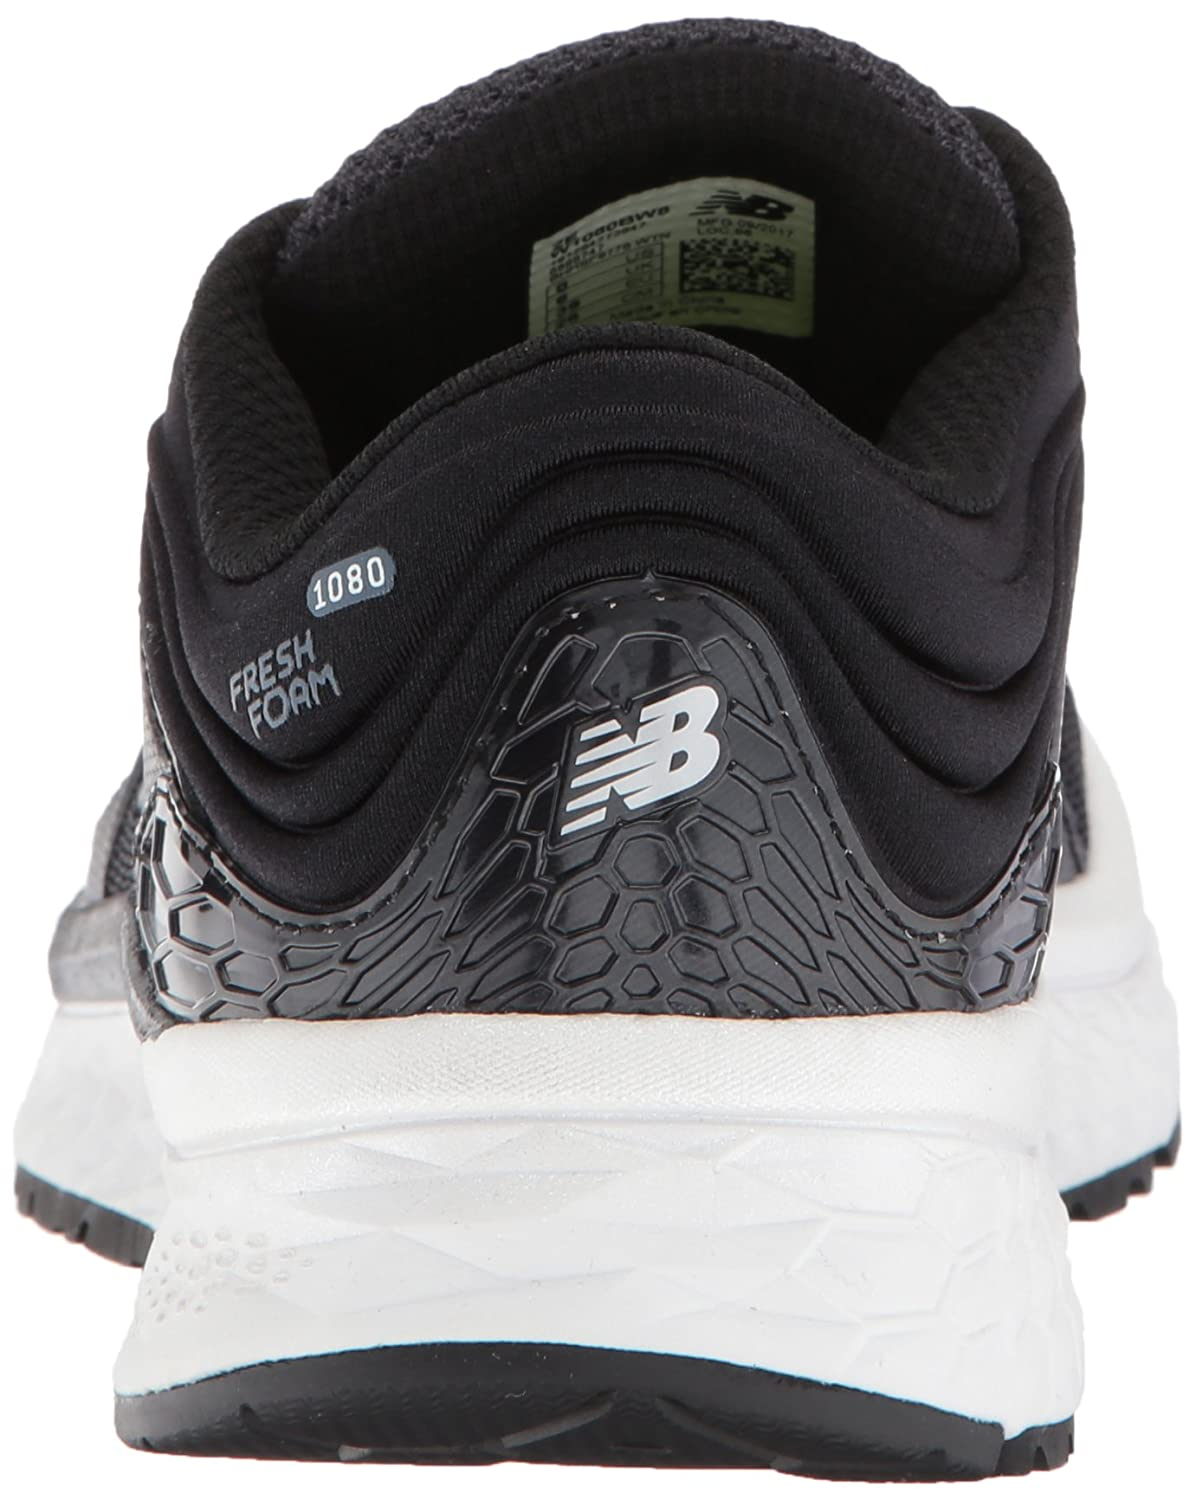 Amazon.com | New Balance Womens 1080v8 Fresh Foam Running Shoe, Black/White, 13 D US | Running